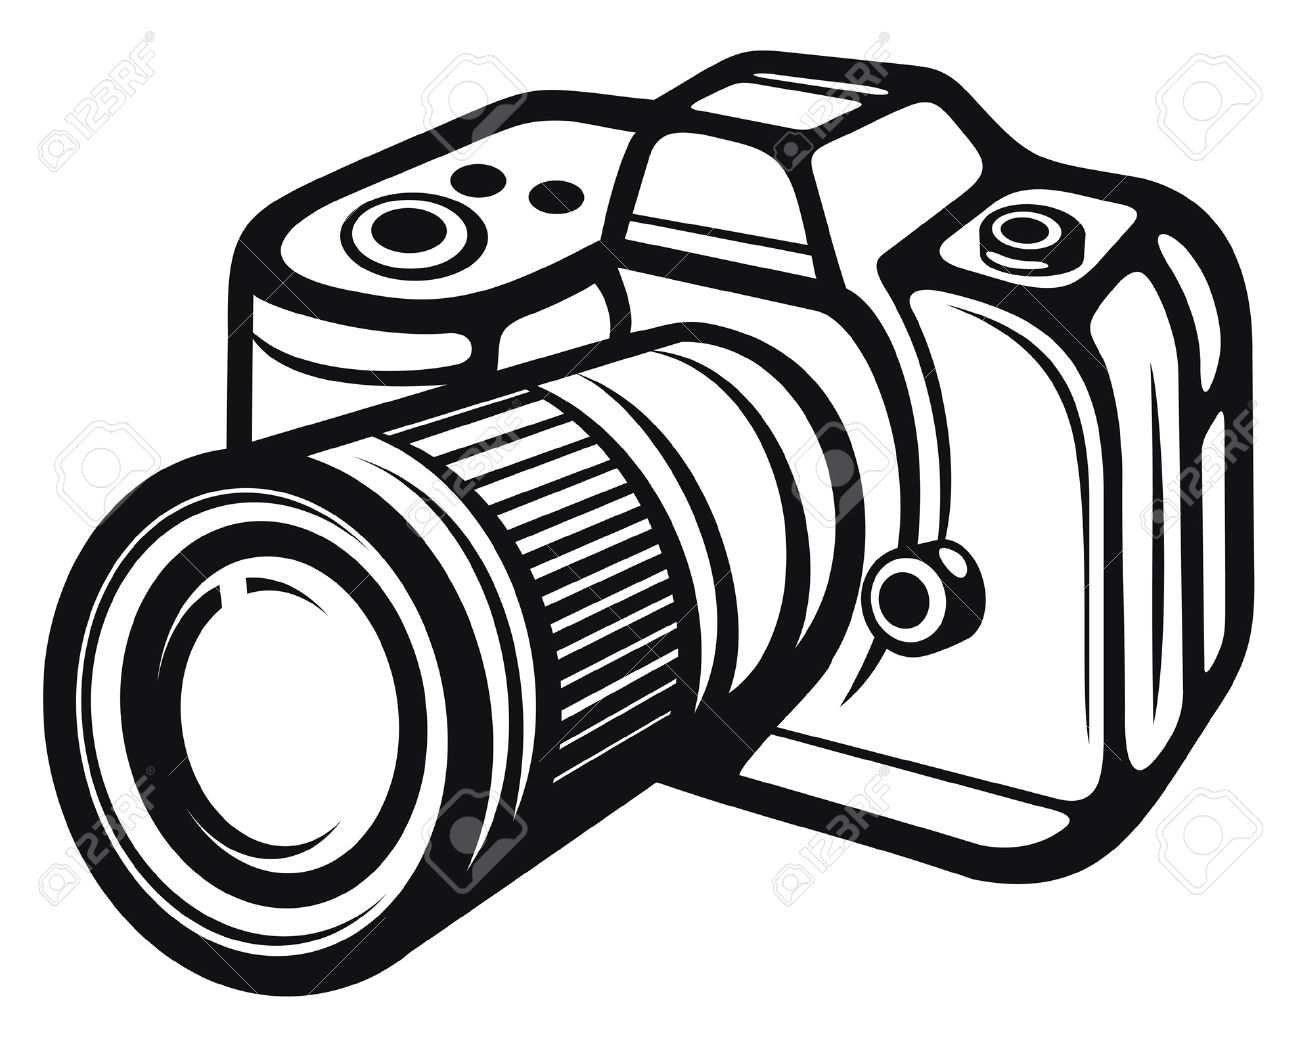 1300x1051 Compact Digital Camera Digital Photo Camera Royalty Free Cliparts